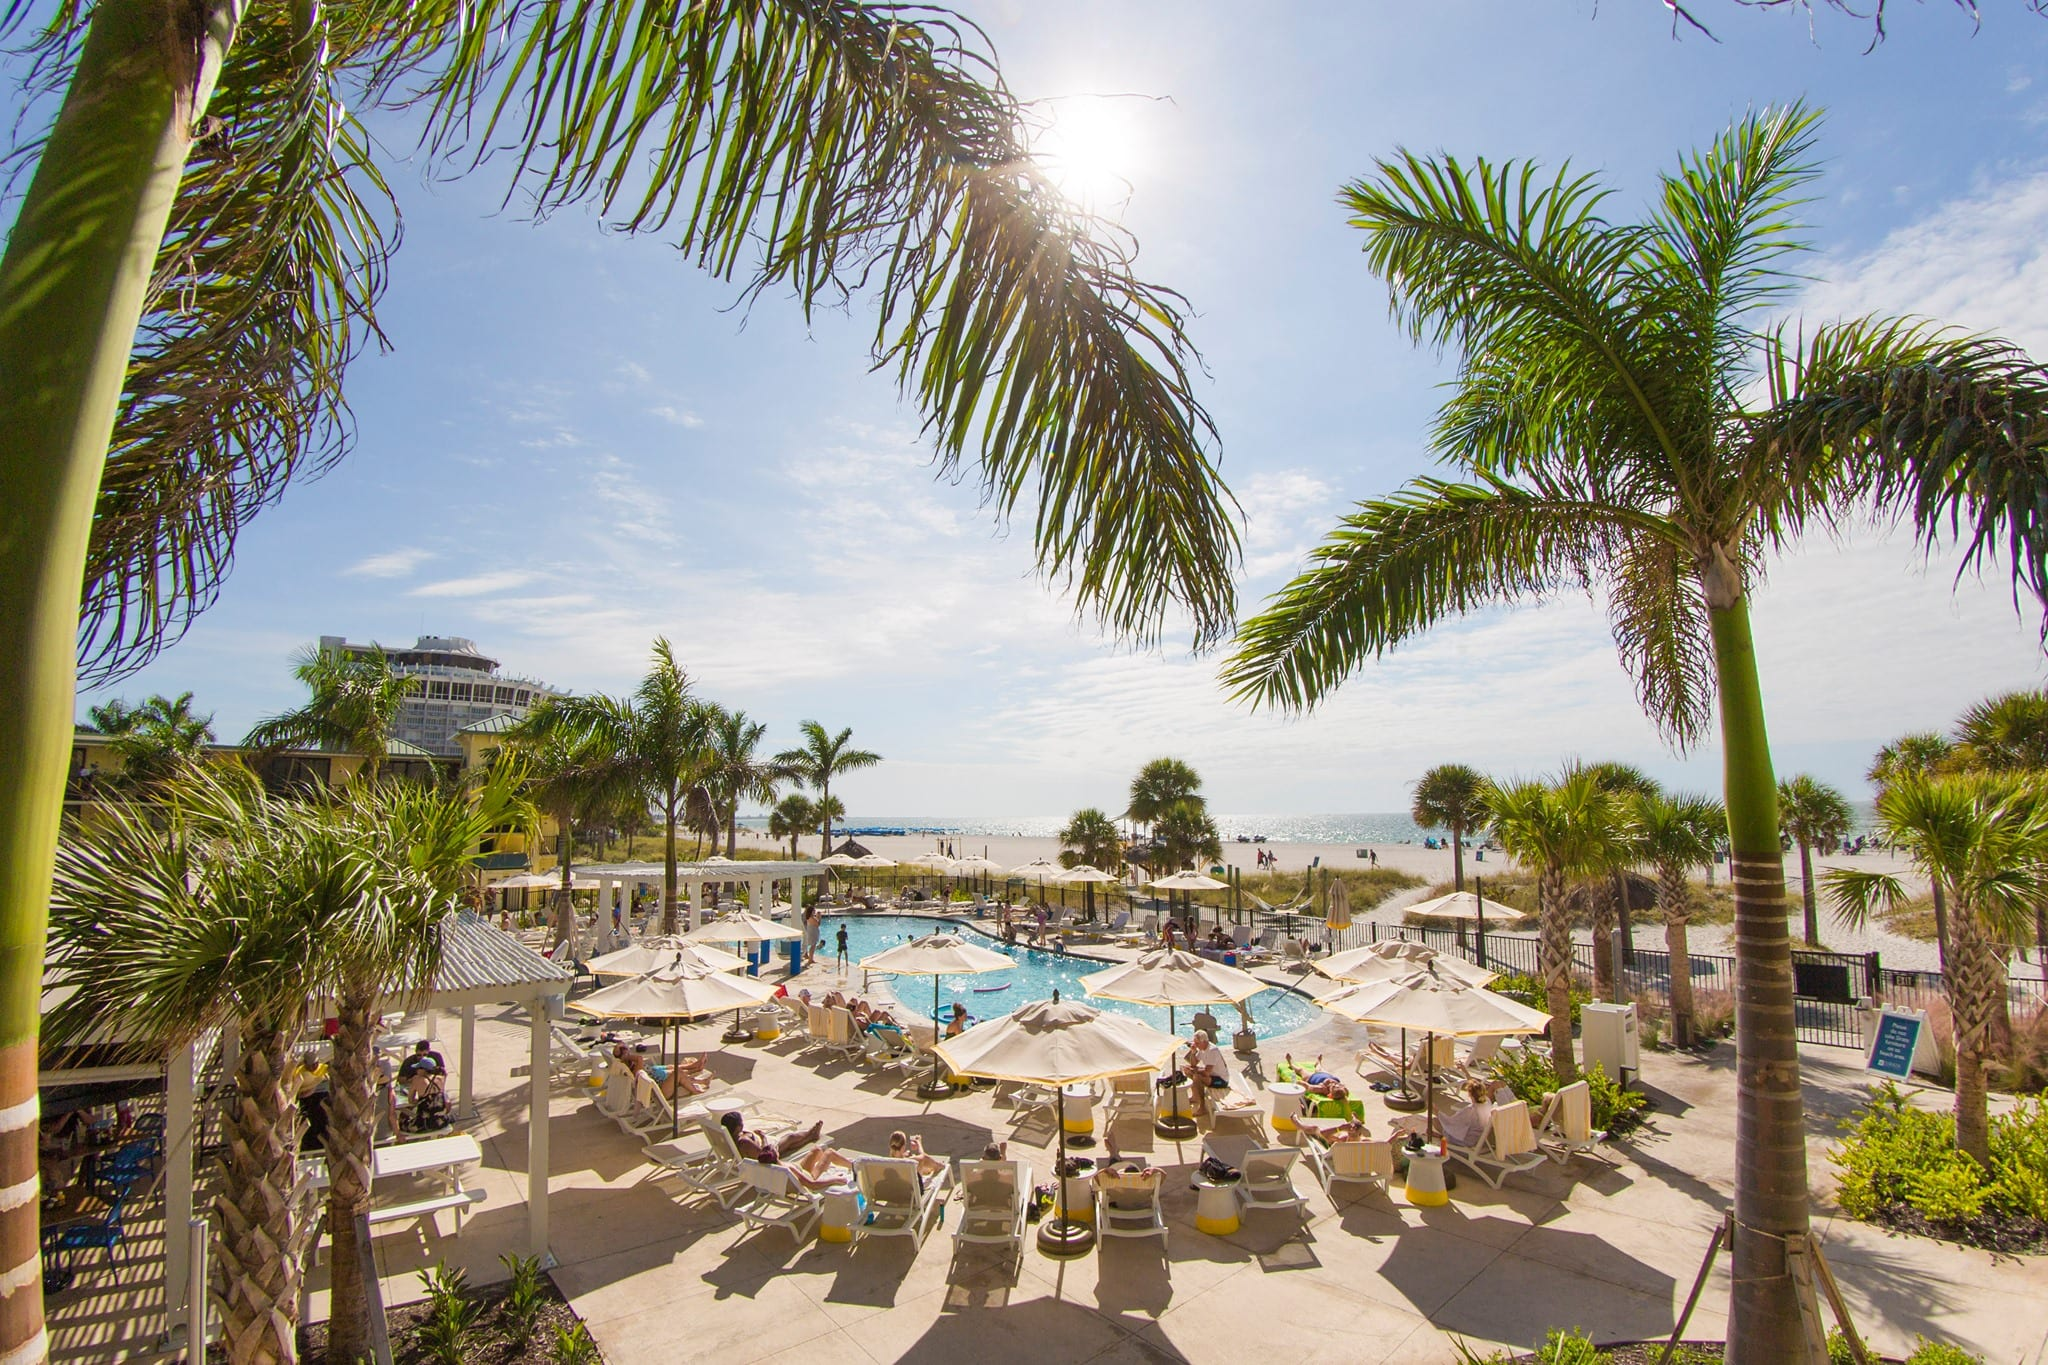 Where to Stay in Florida for Spring 2020